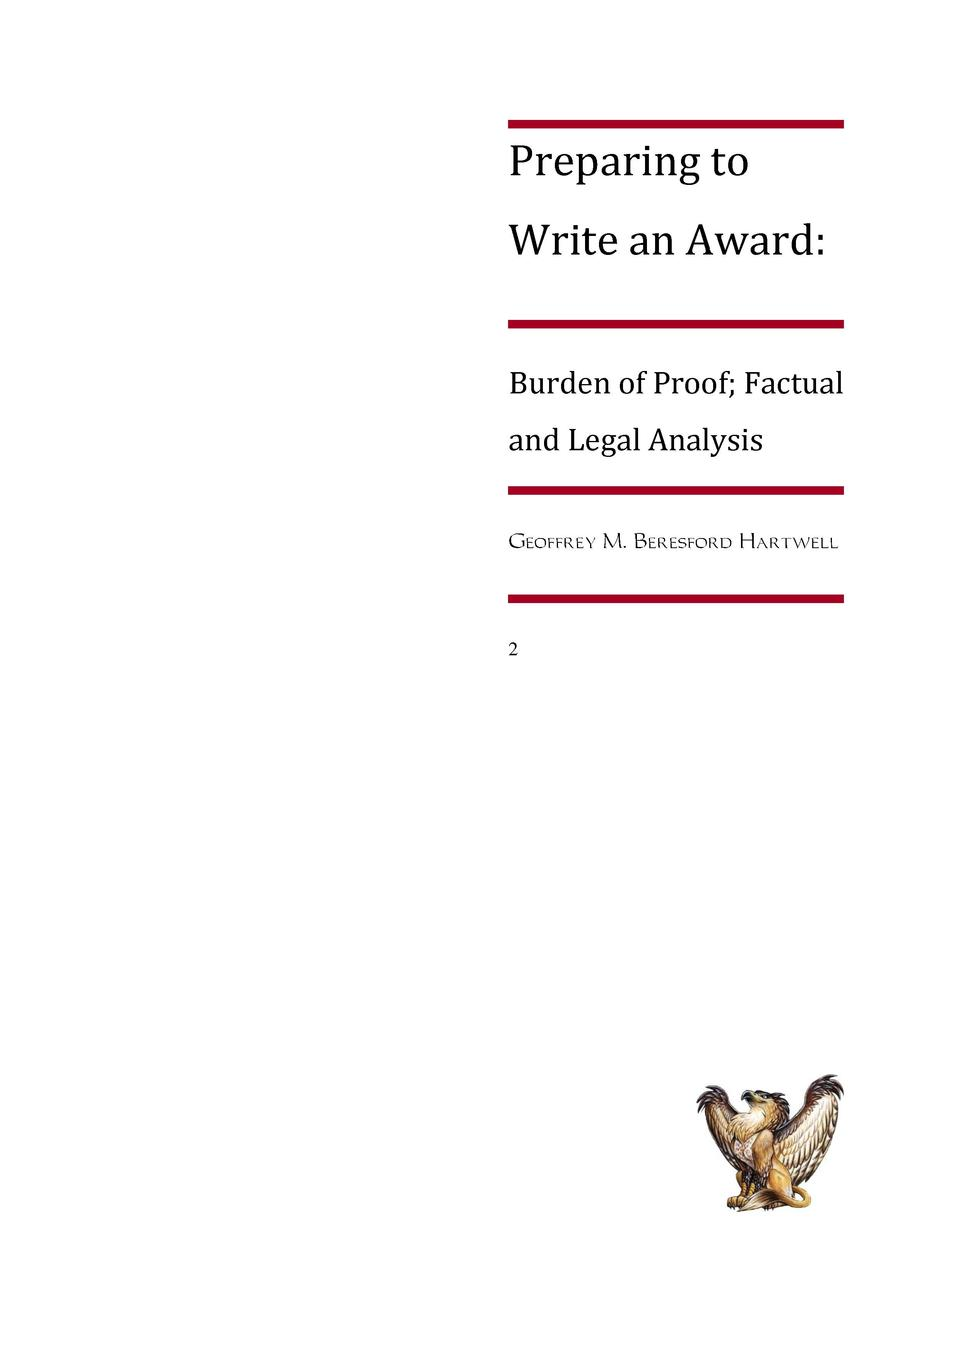 Preparing to Write an Award  Burden of Proof  Factual and Legal Analysis  2